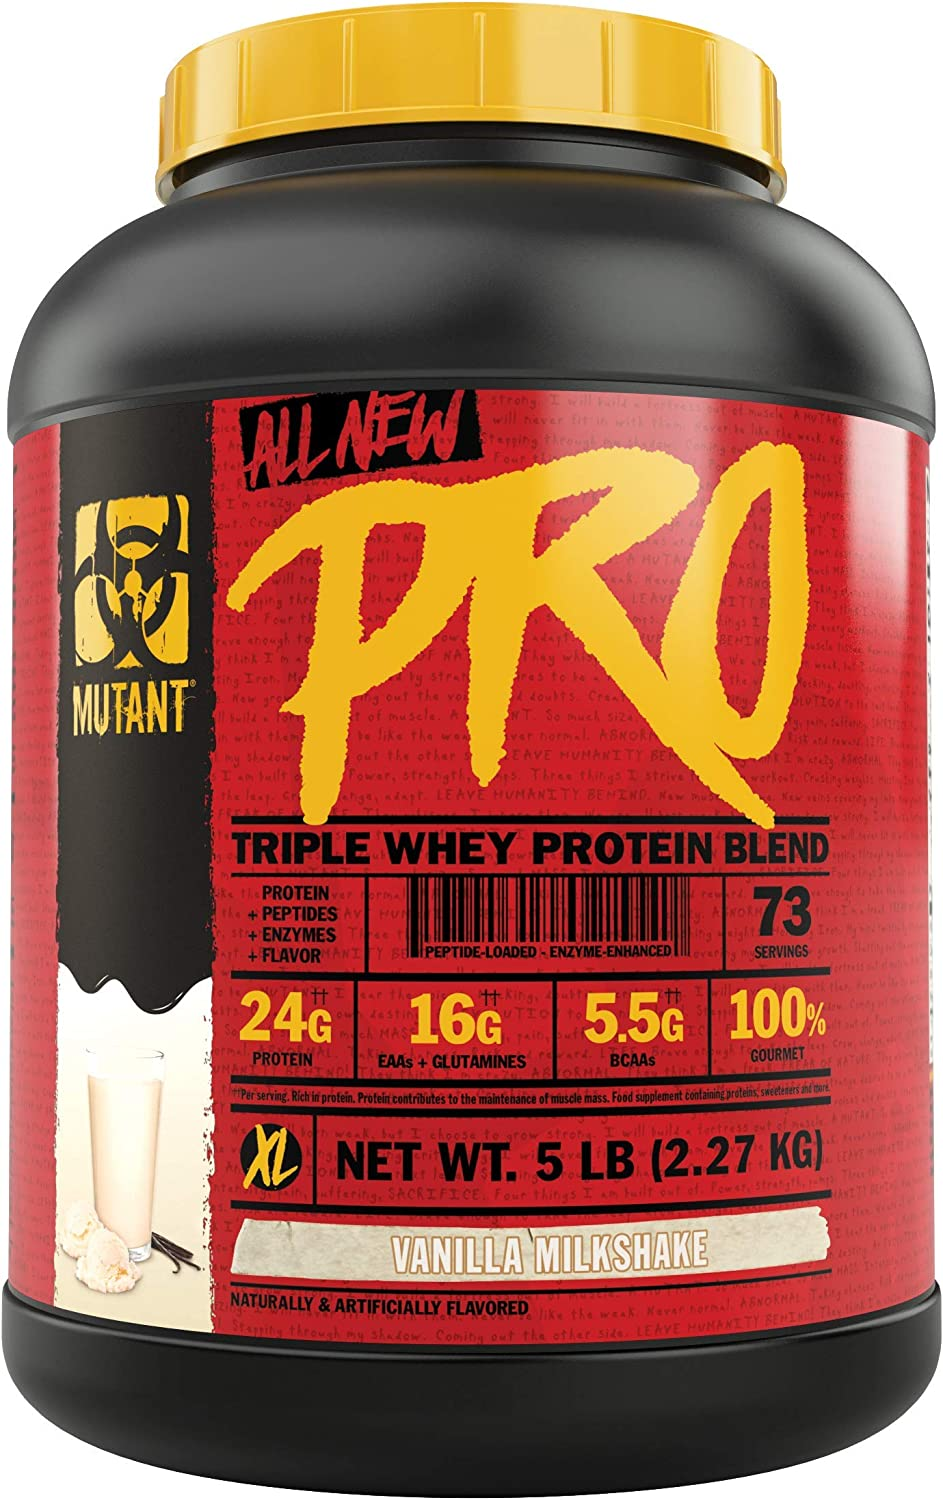 Mutant Pro Triple Whey Protein Powder Supplement Time-Released for Enhanced Amino Acid Absorption Decadent Gourmet Flavors 5 lbs Vanilla Milkshake